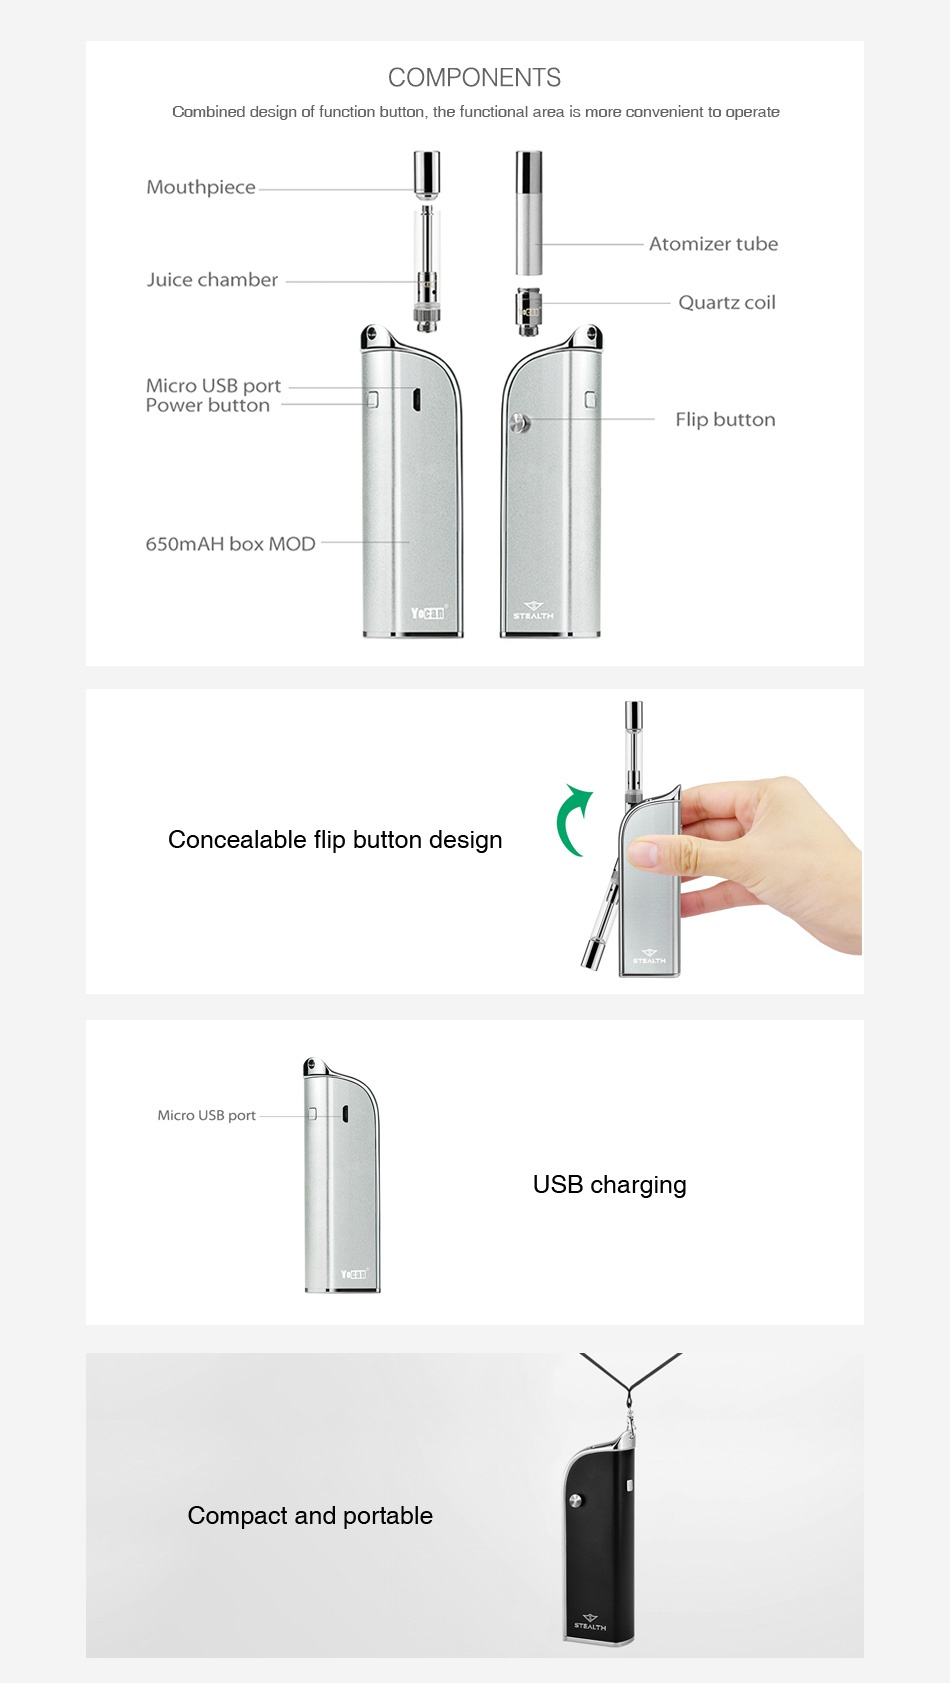 Yocan Stealth 2-in-1 Kit 650mAh COMPONENTS Combined design of function button  the functional area is more convenient to operate Mouthpiece Atomizer tube Juice chamber Quartz coil Micro USB port Power button Flip button 650mAH box MOD Concealable flip button design Micro USB port USB charging Compact and portable